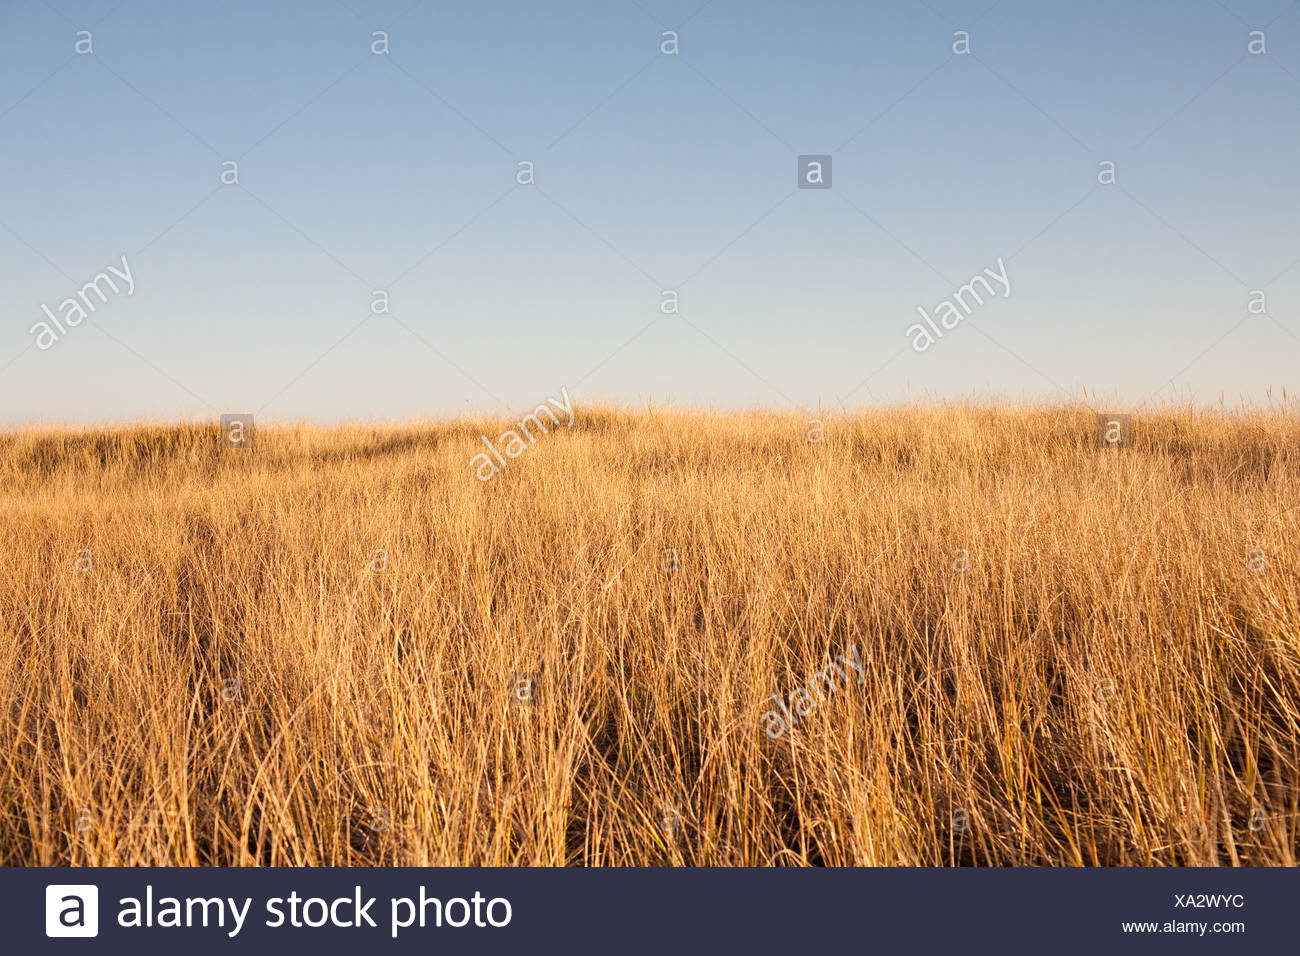 Seagrass - Stock Image